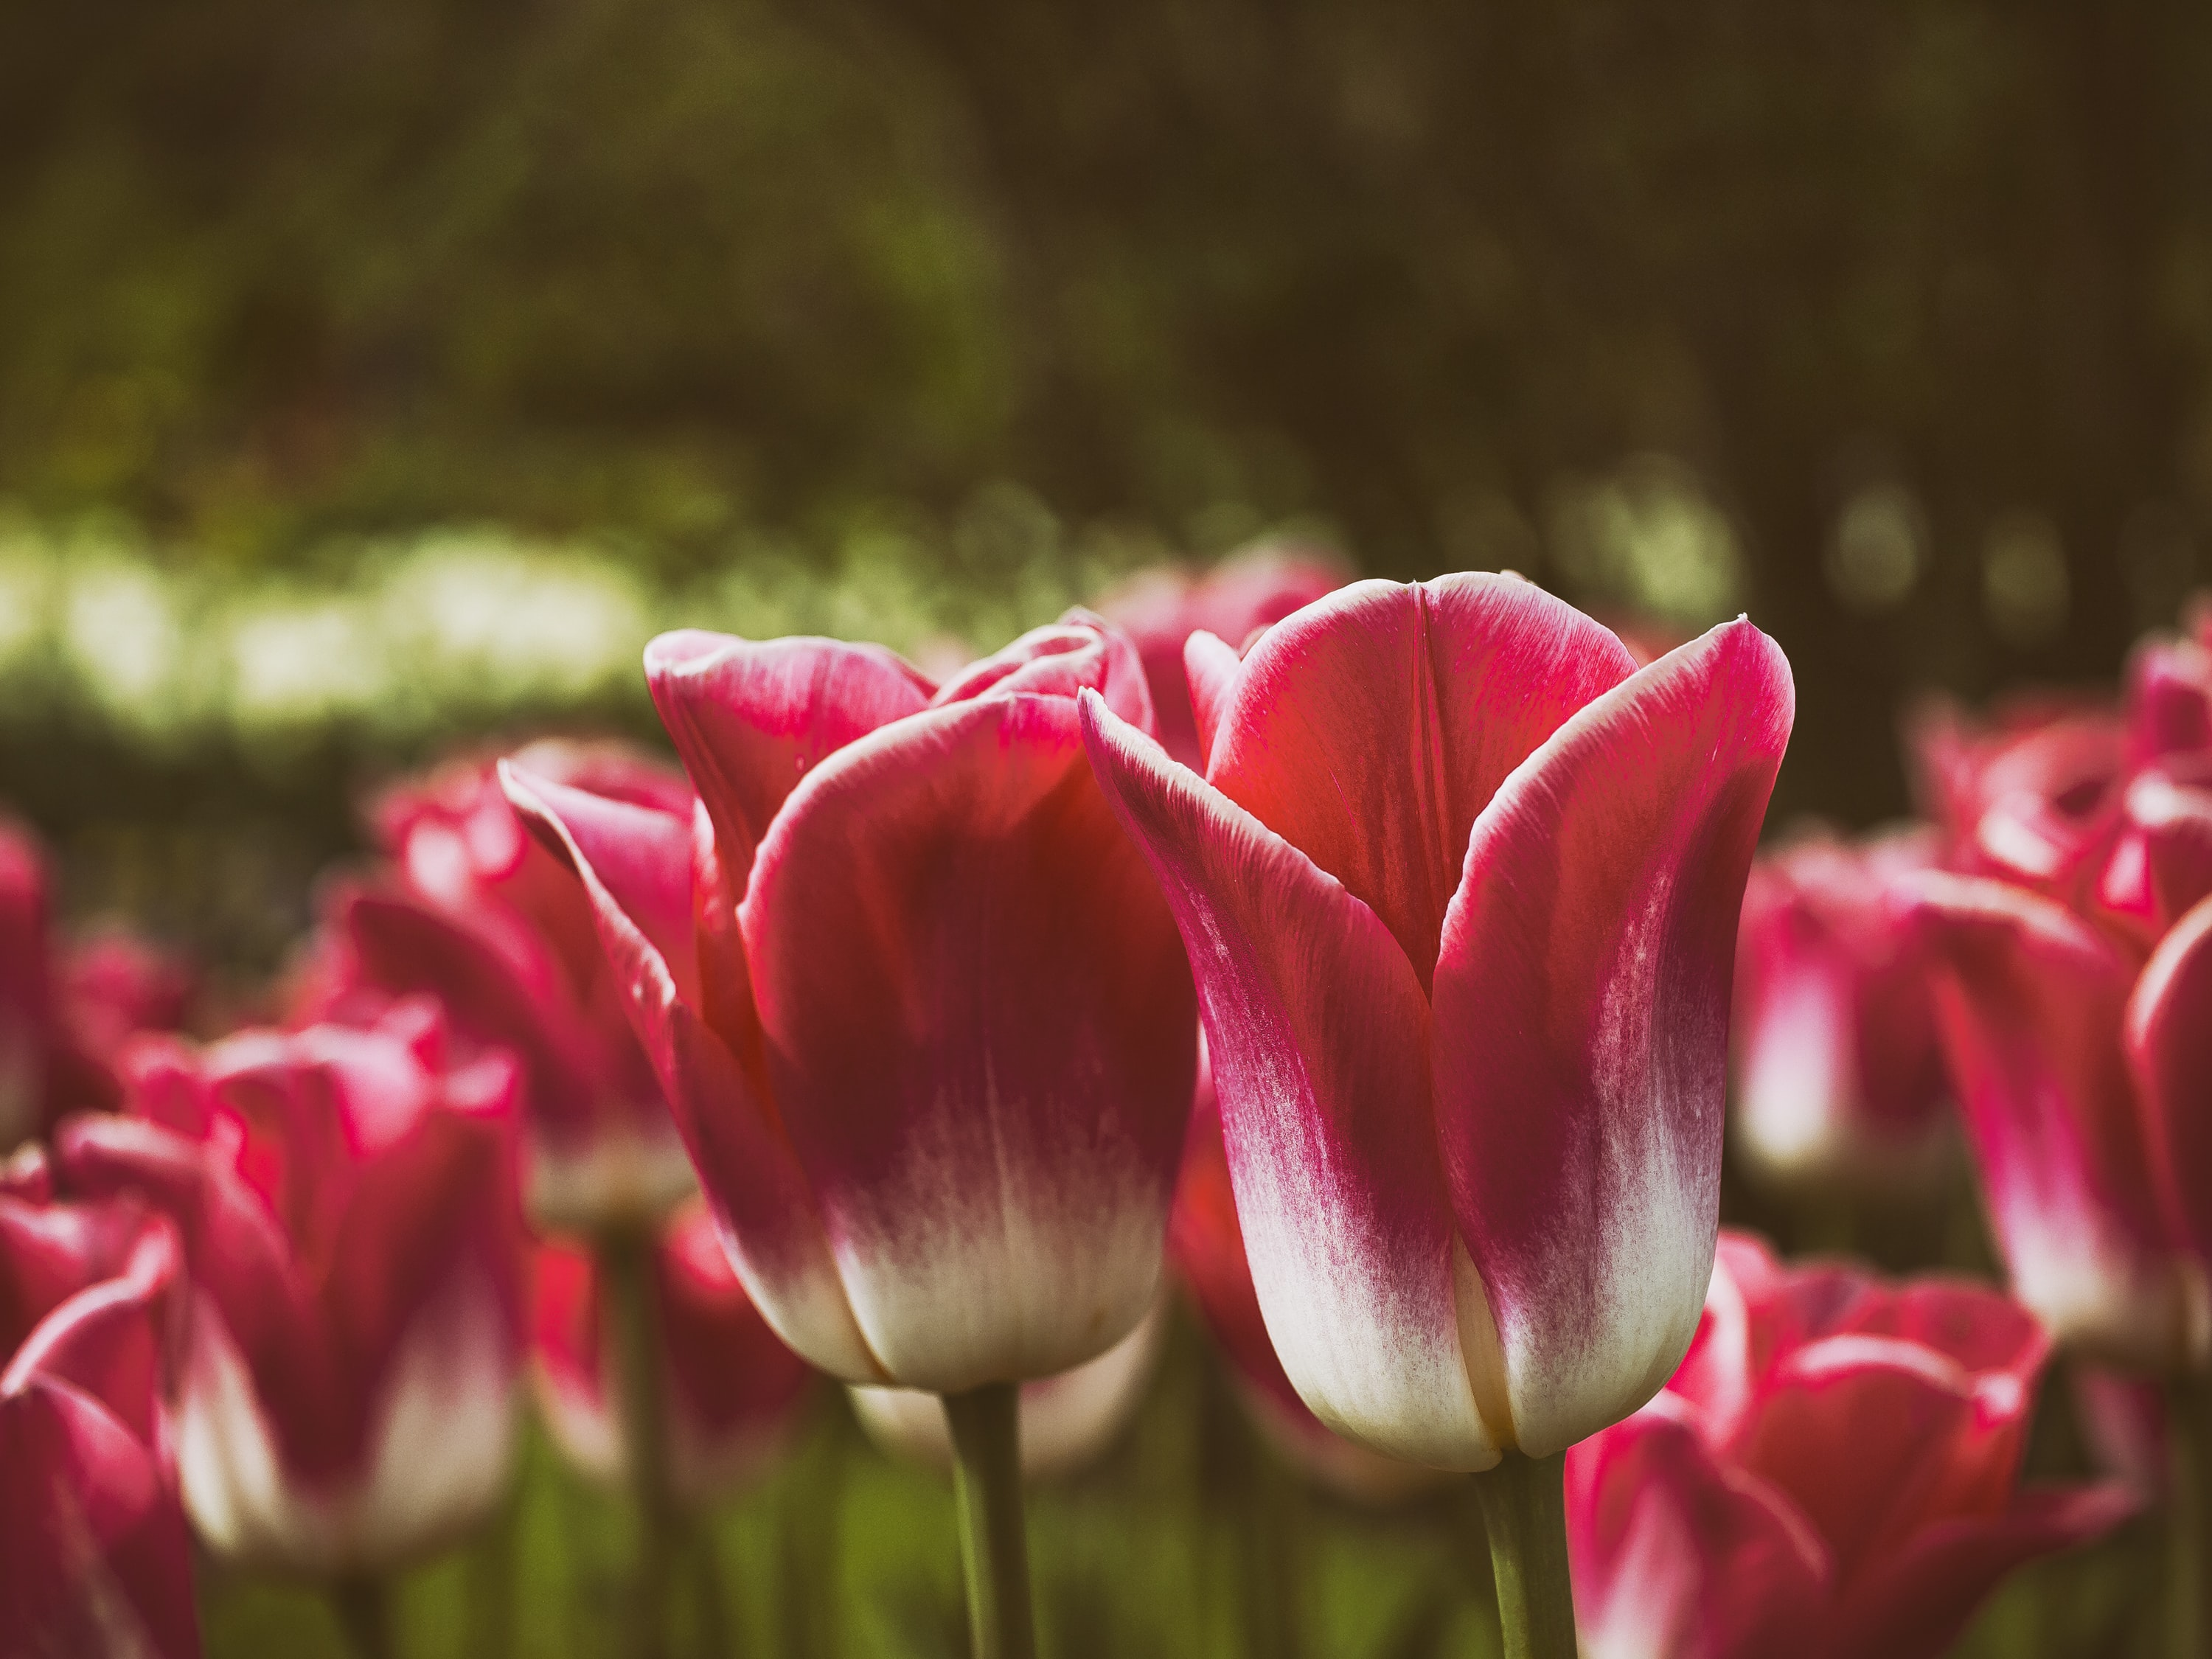 Red spring tulips bloom in a field of flowers